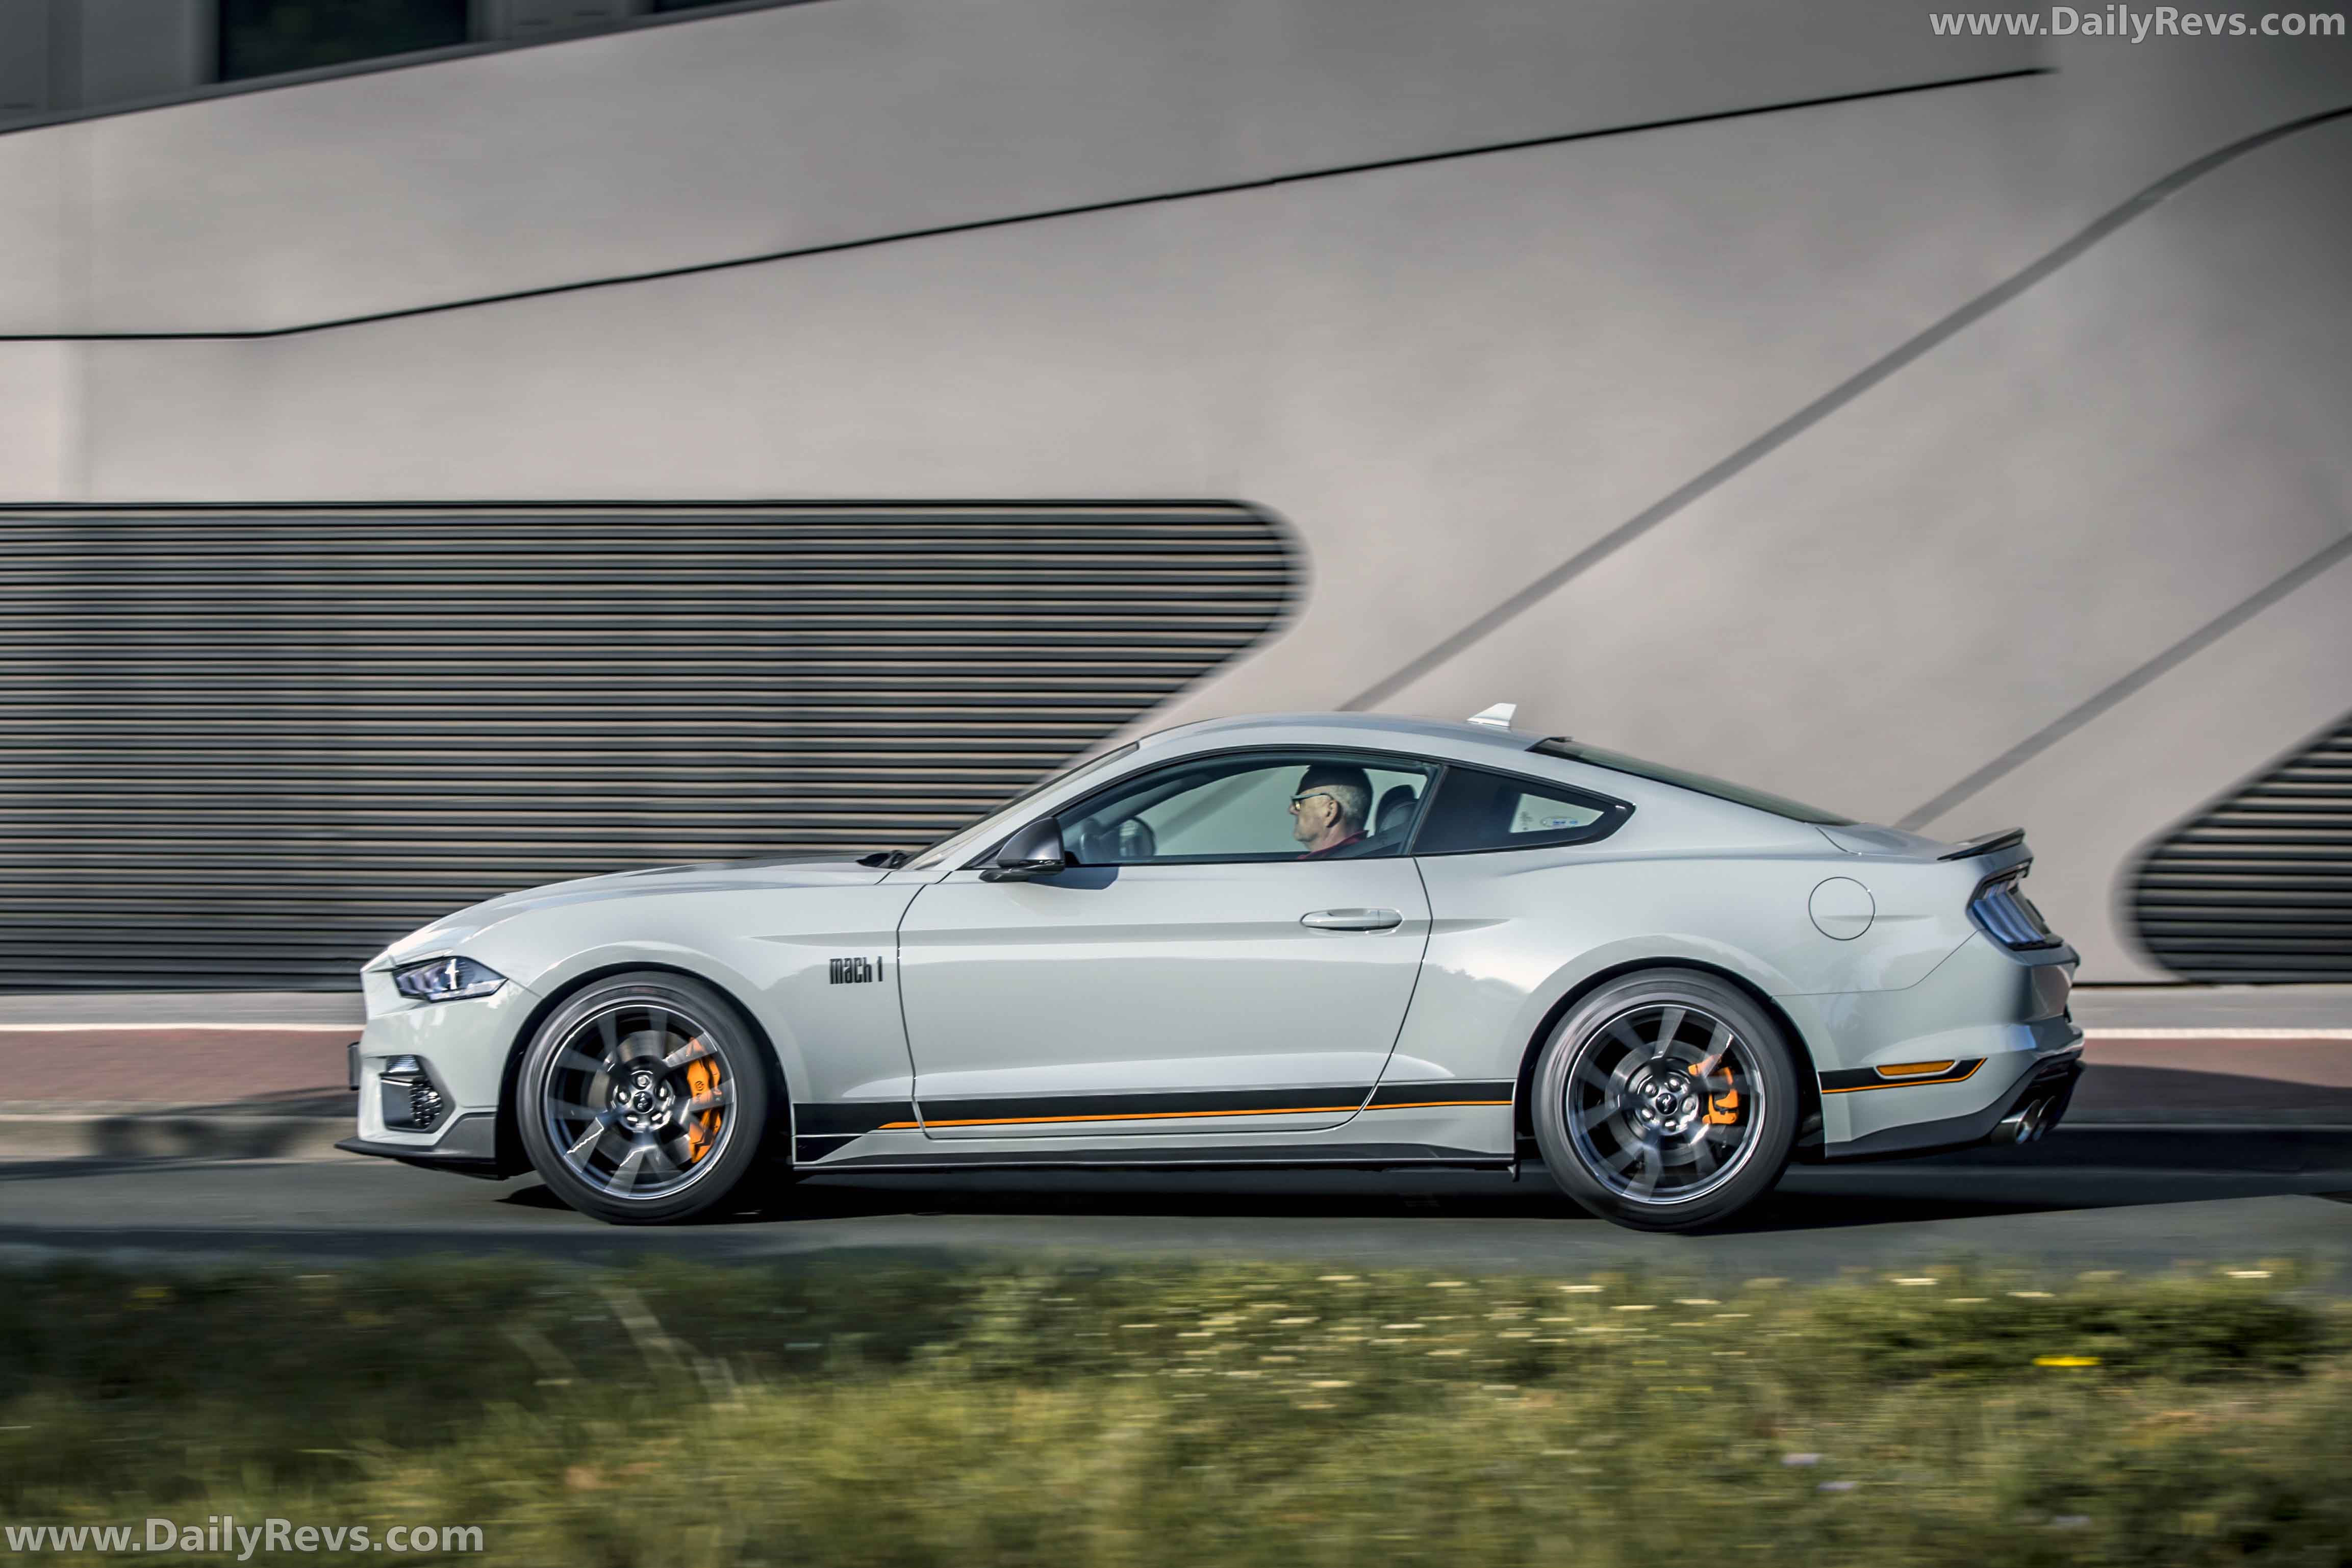 2021 Ford Mustang Mach 1 Video